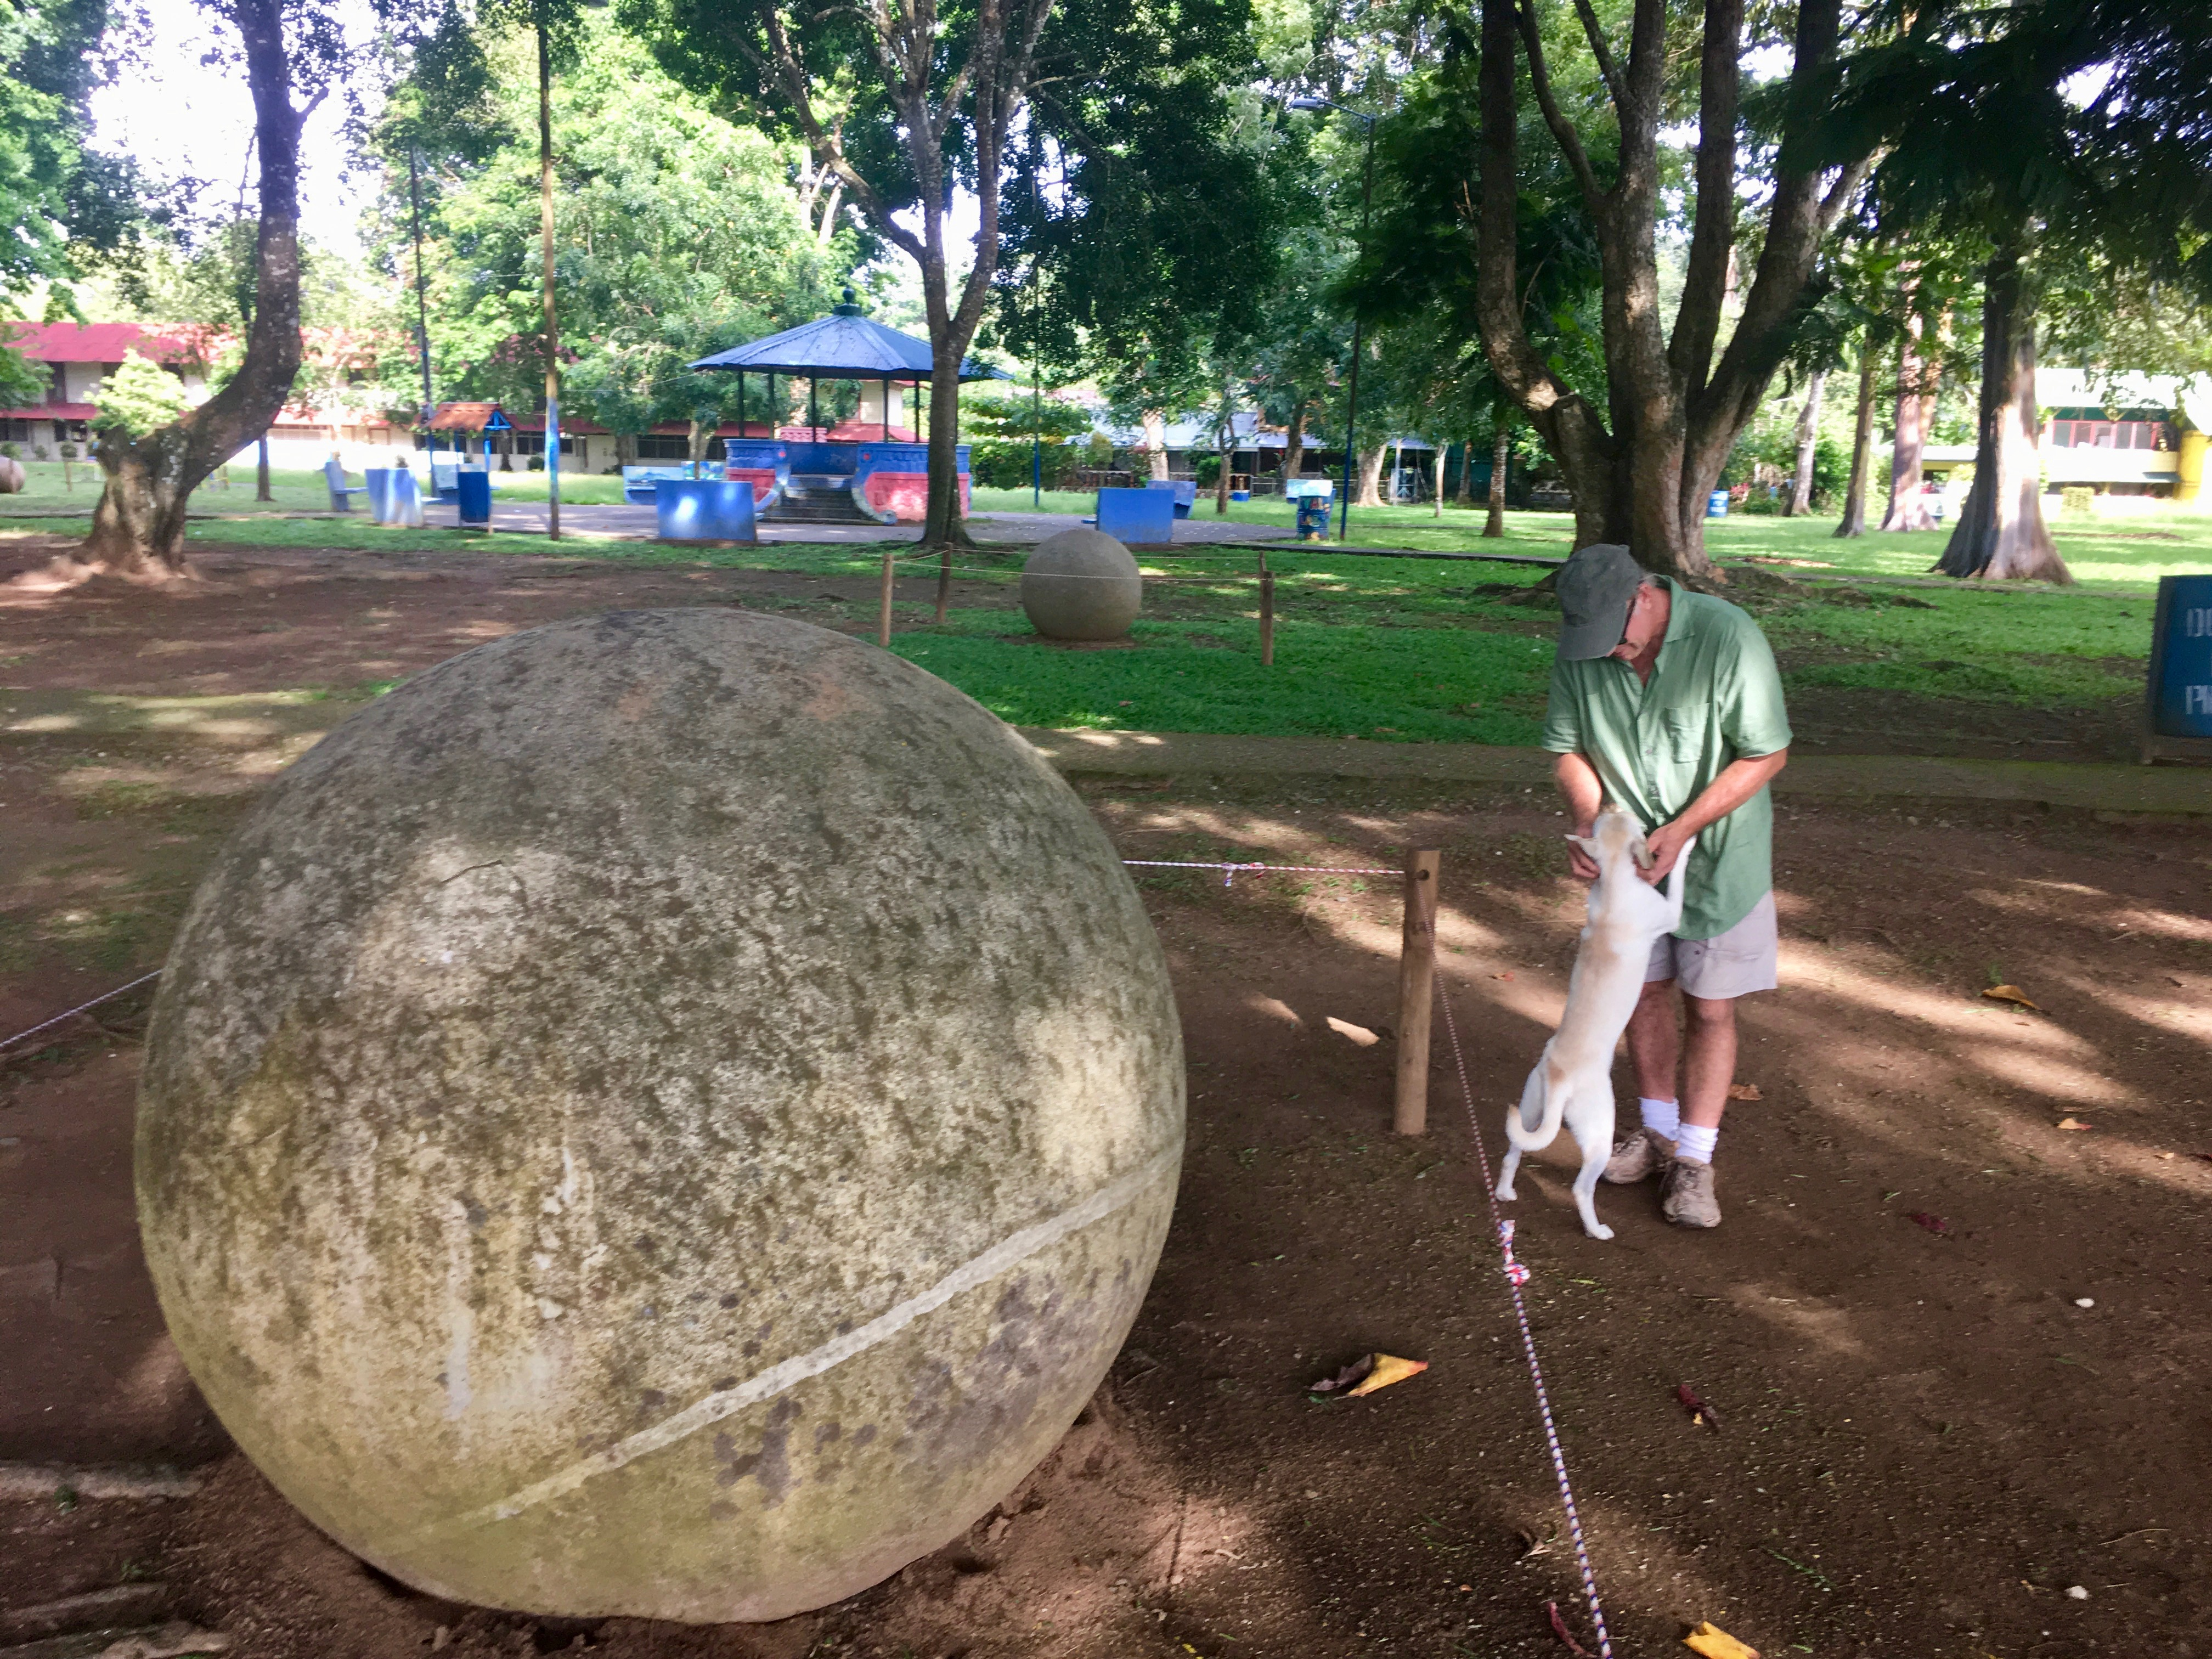 This is the largest of the spheres we saw in the park. Jeff and a sweet stray we met are hanging out in the background.